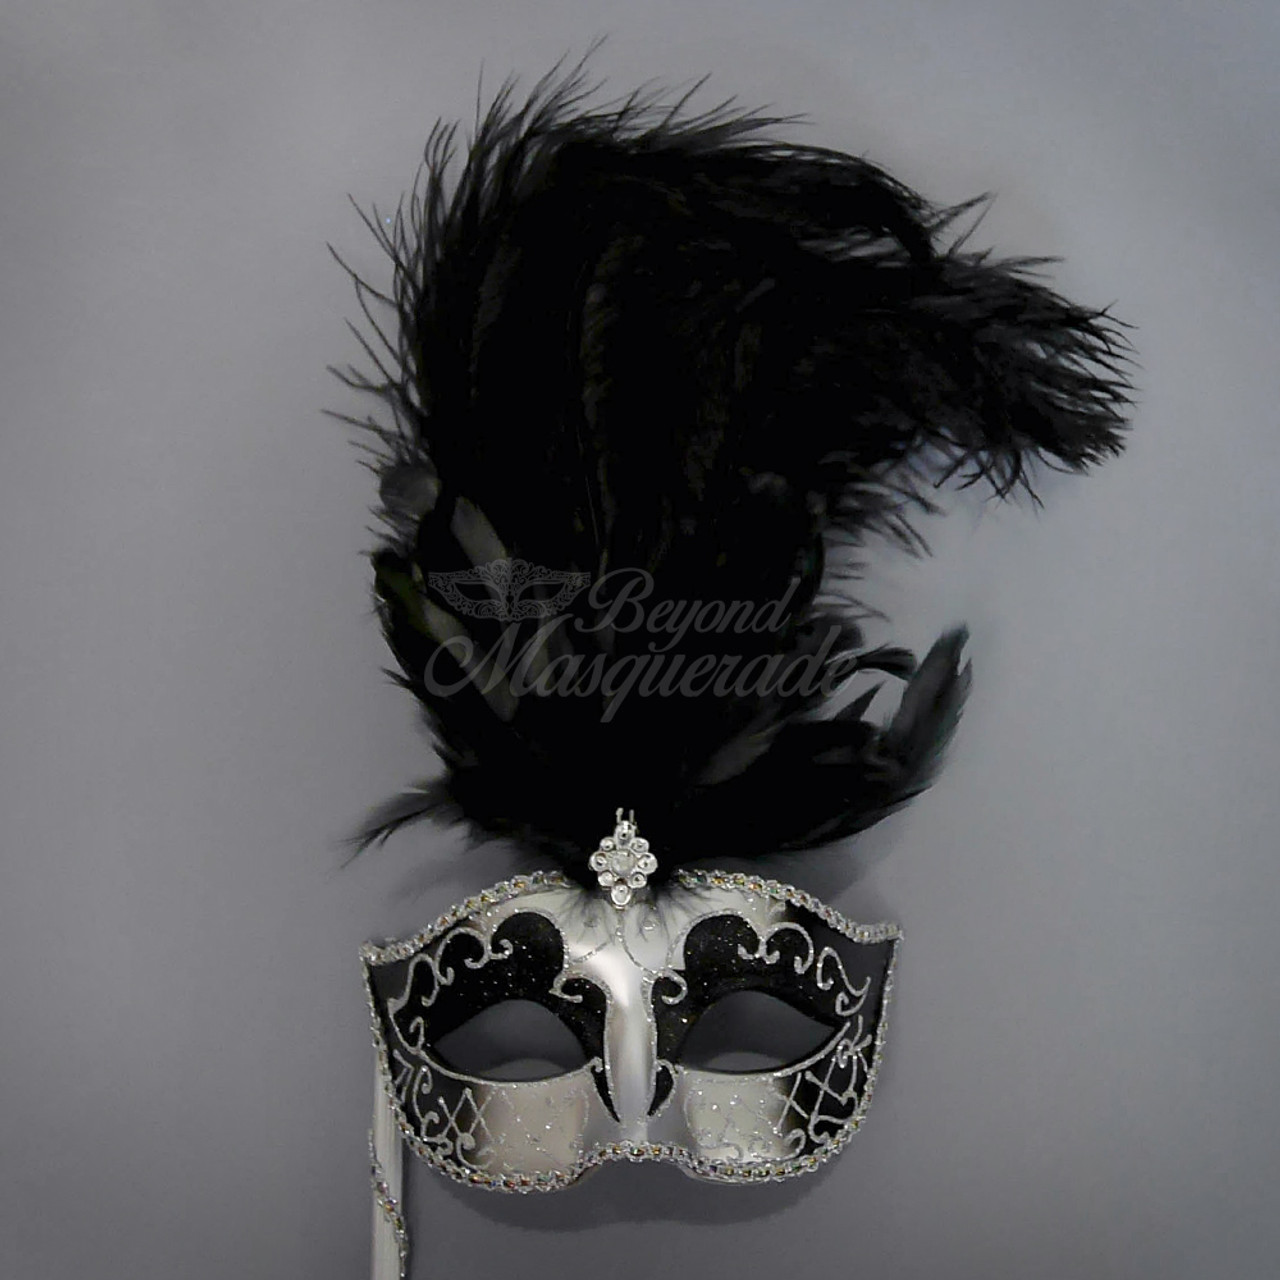 Mardi Gras Mask Silver /& White Mask with Handheld Stick Handheld Stick Mask Masquerade Ball Masquerade Mask Mardi Gras Masks